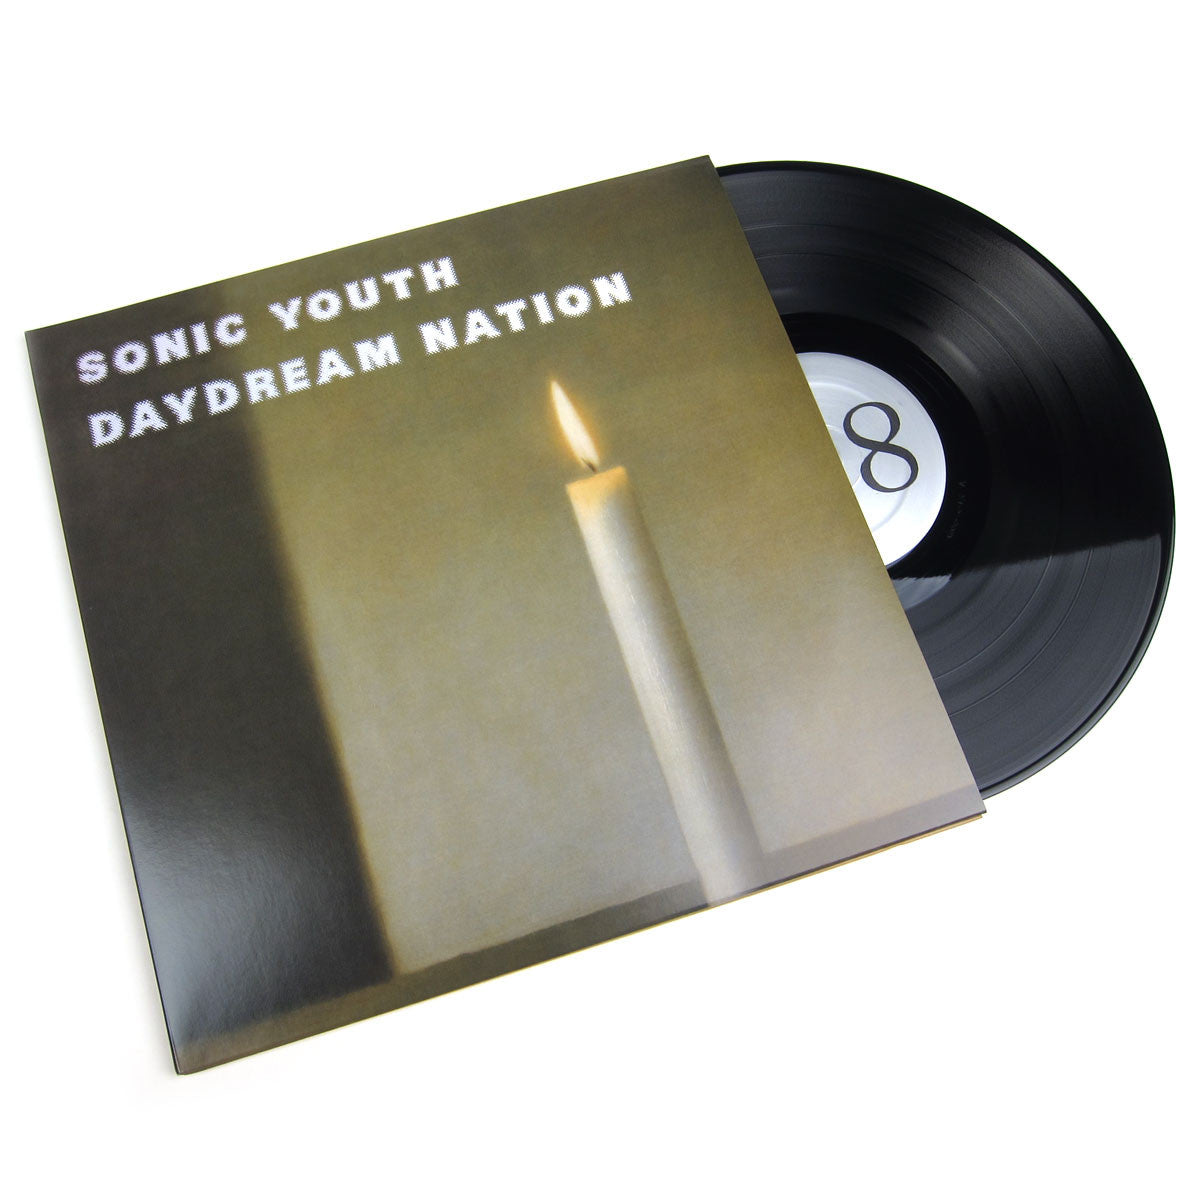 Sonic Youth: Daydream Nation (Poster, Free MP3) Vinyl 2LP